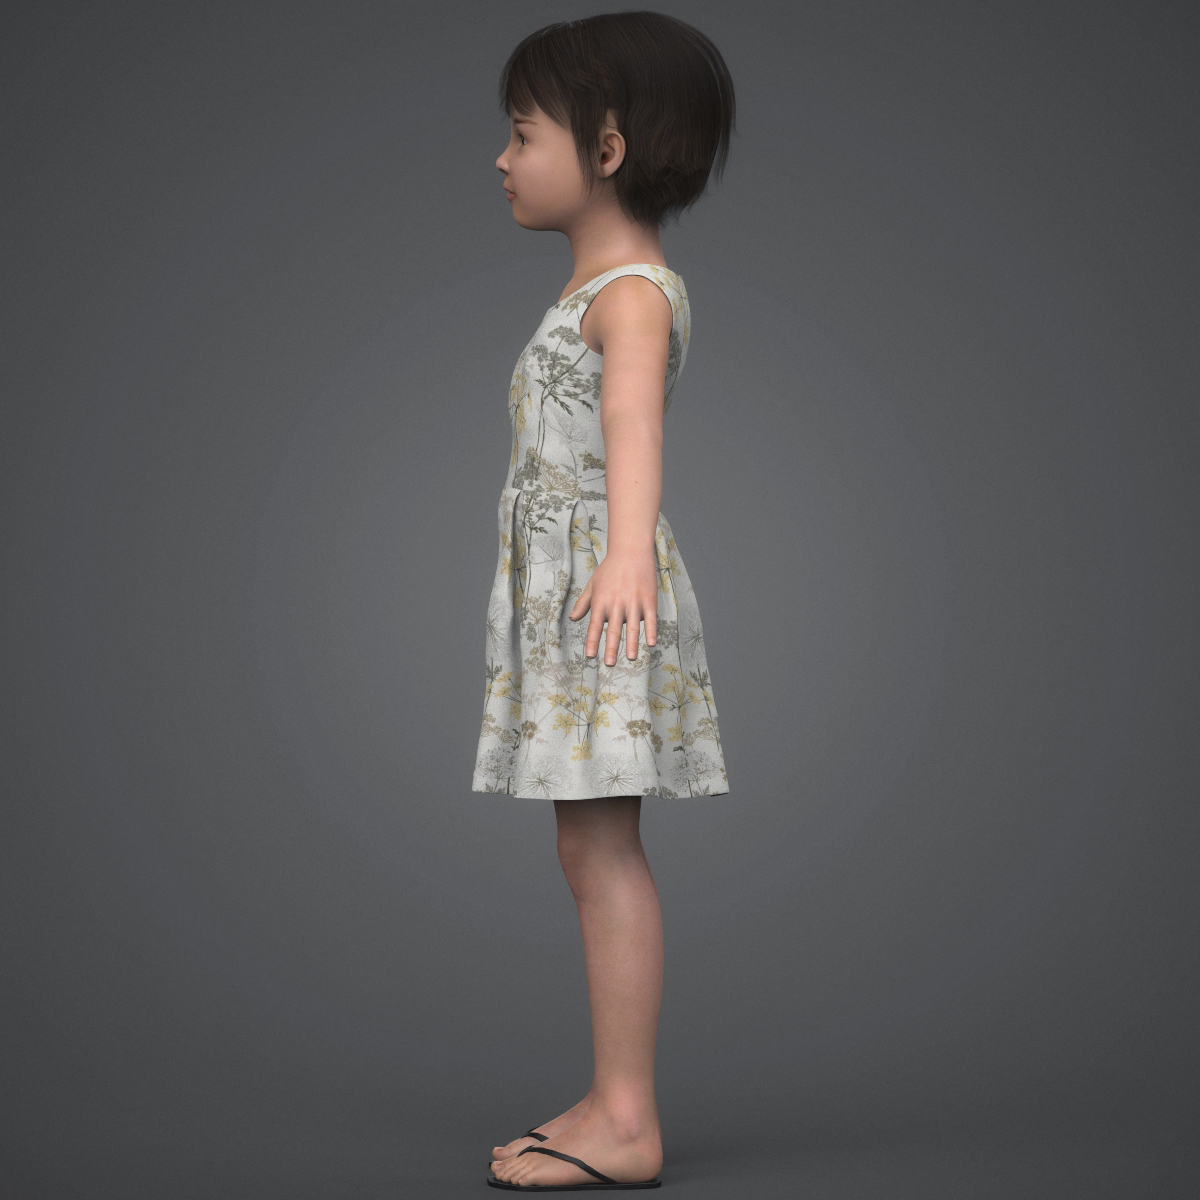 beautiful child girl 3d model max fbx c4d ma mb texture obj 252396